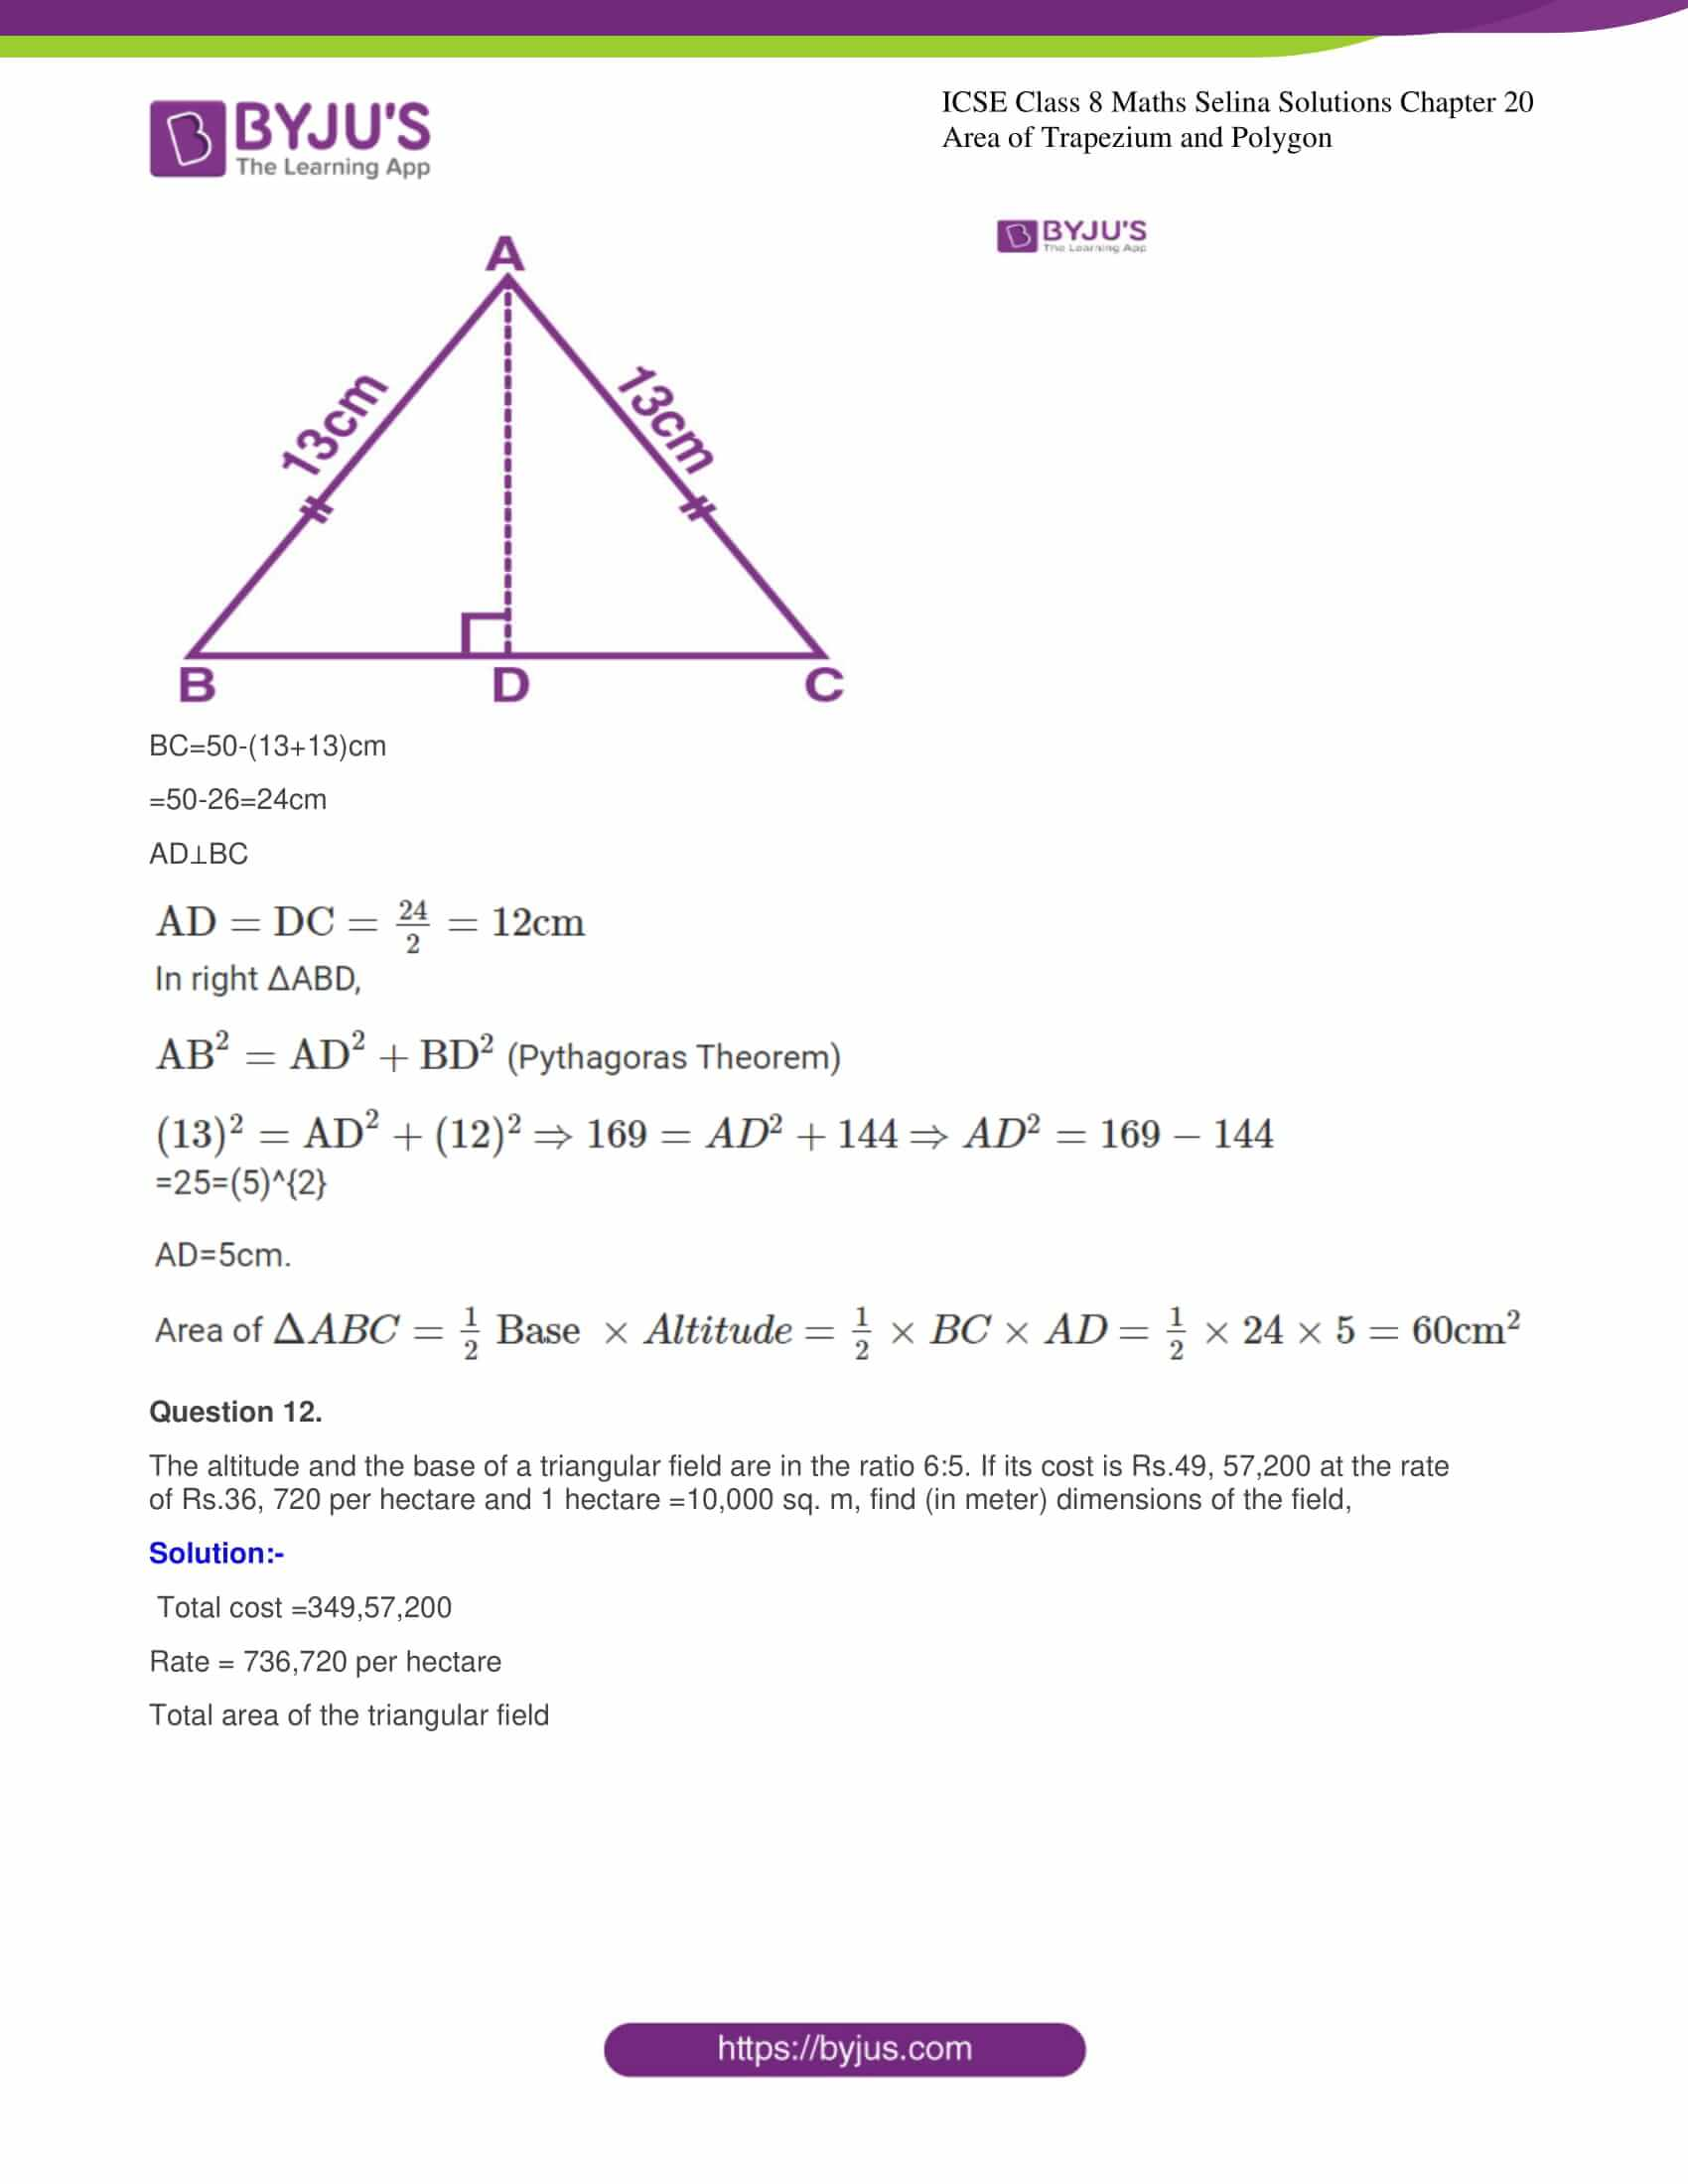 icse class 8 maths may3 selina solutions chapter 20 area of trapezium and polygon 08